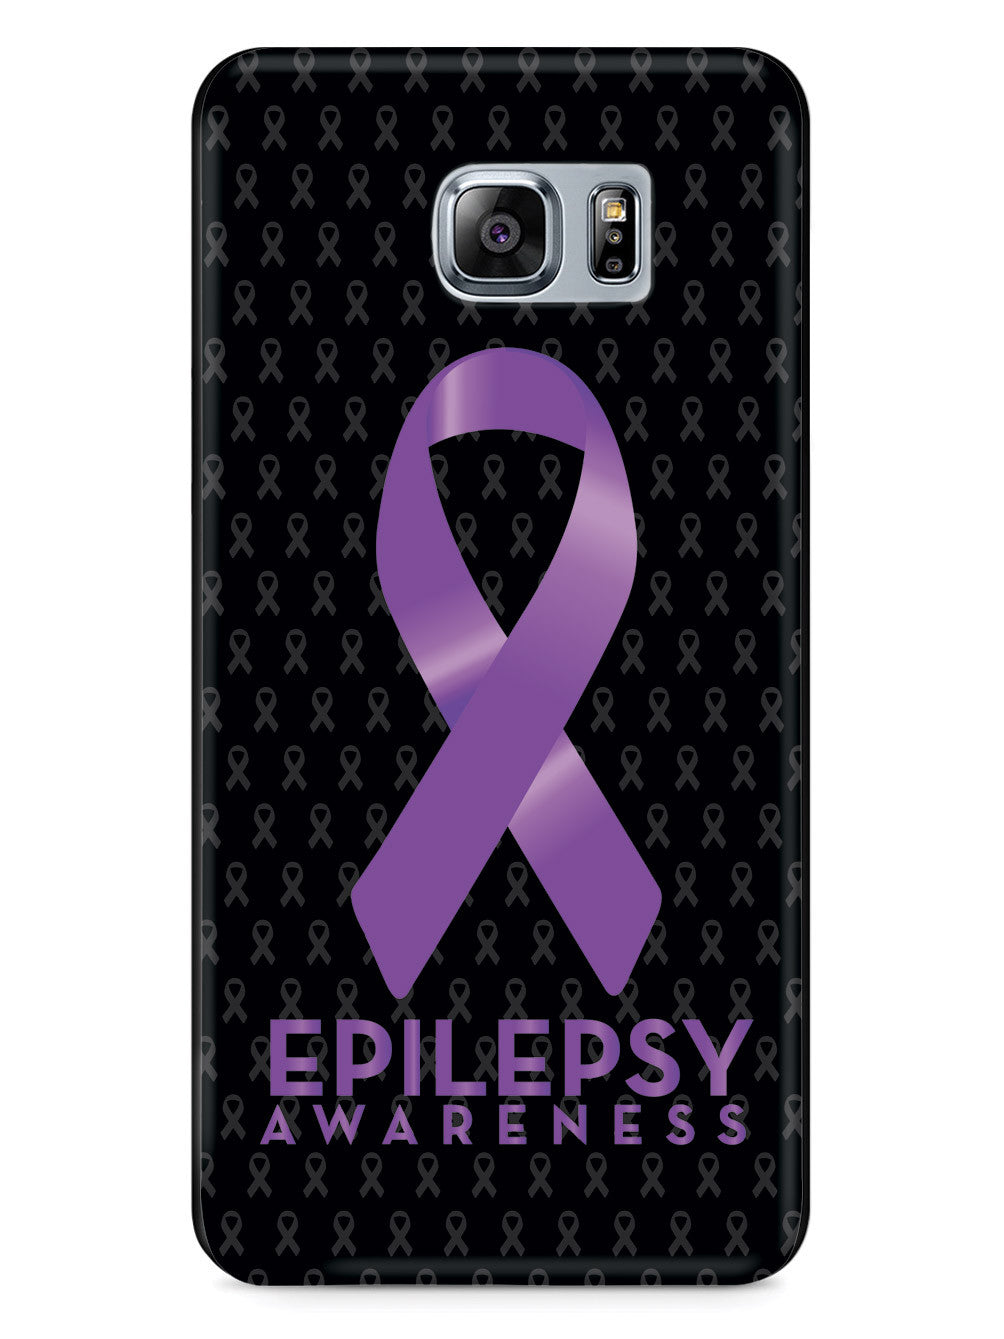 Epilepsy Awareness - Black Case